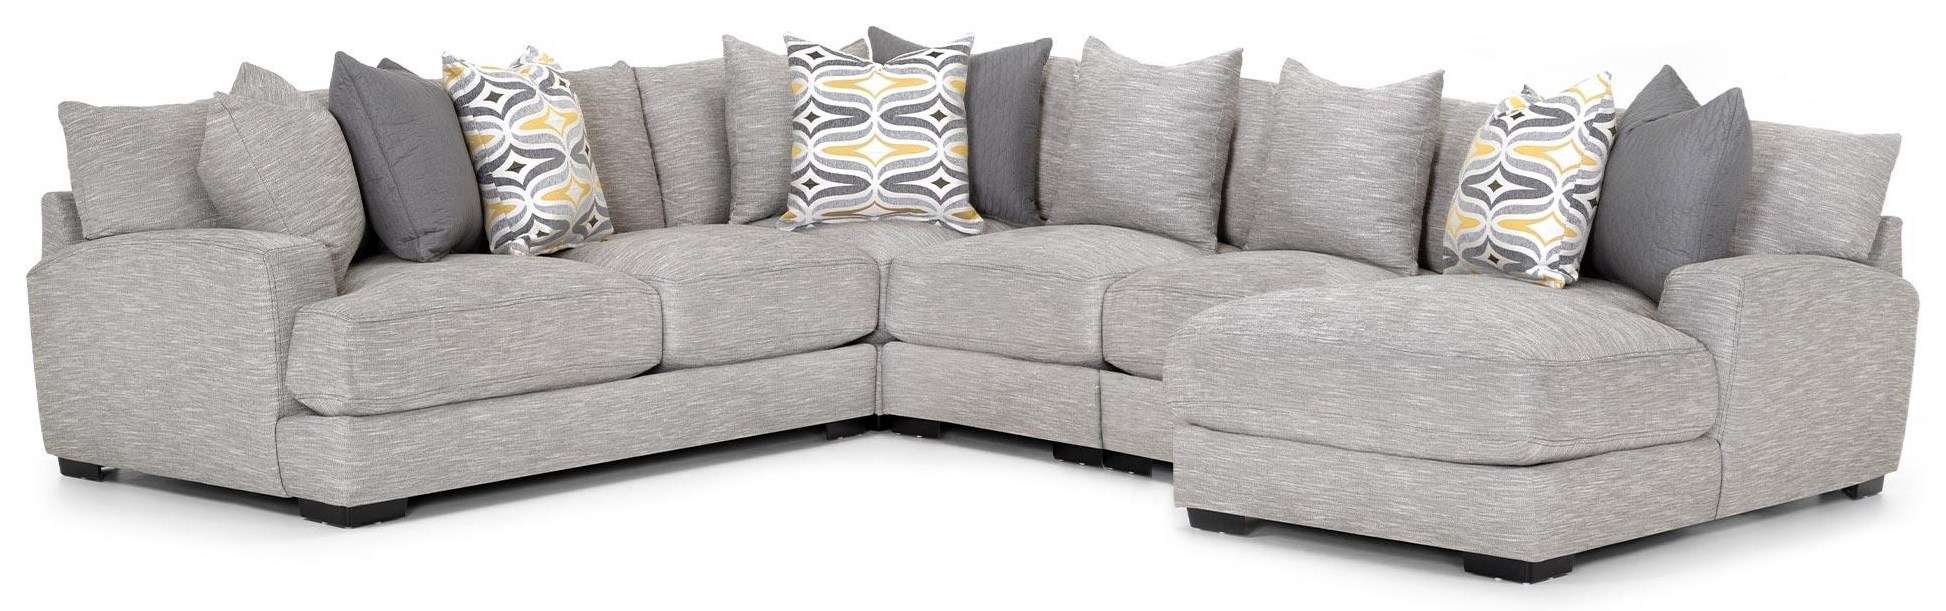 Brendan Sectional with Chaise by Franklin at Crowley Furniture & Mattress